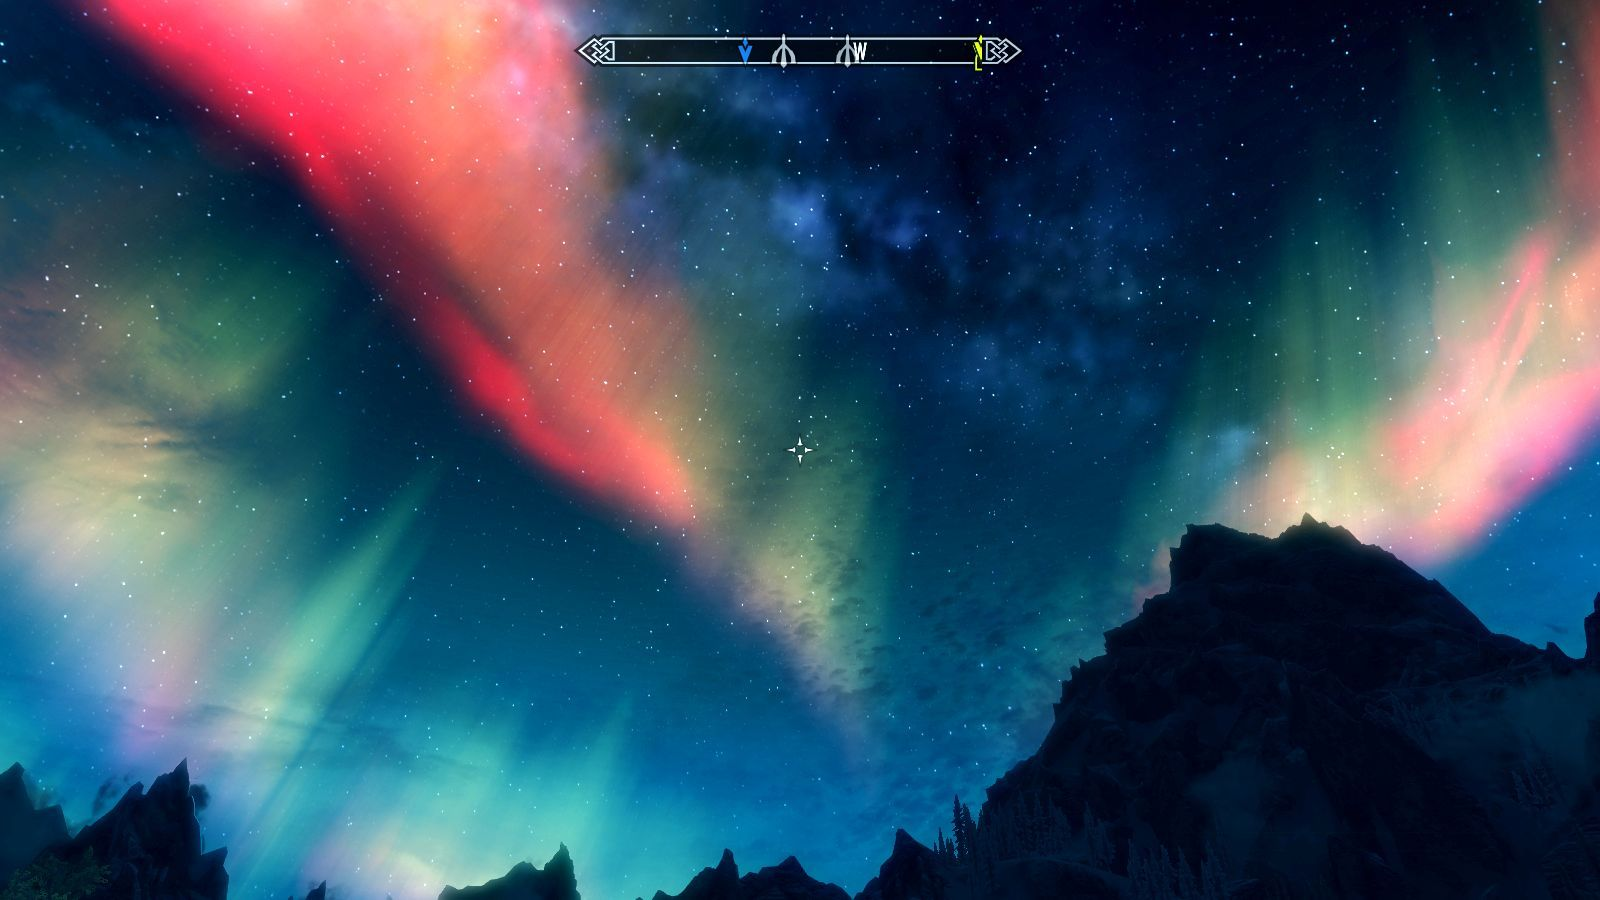 The Elder Scrolls V: Skyrim Windows Aurora Borealis